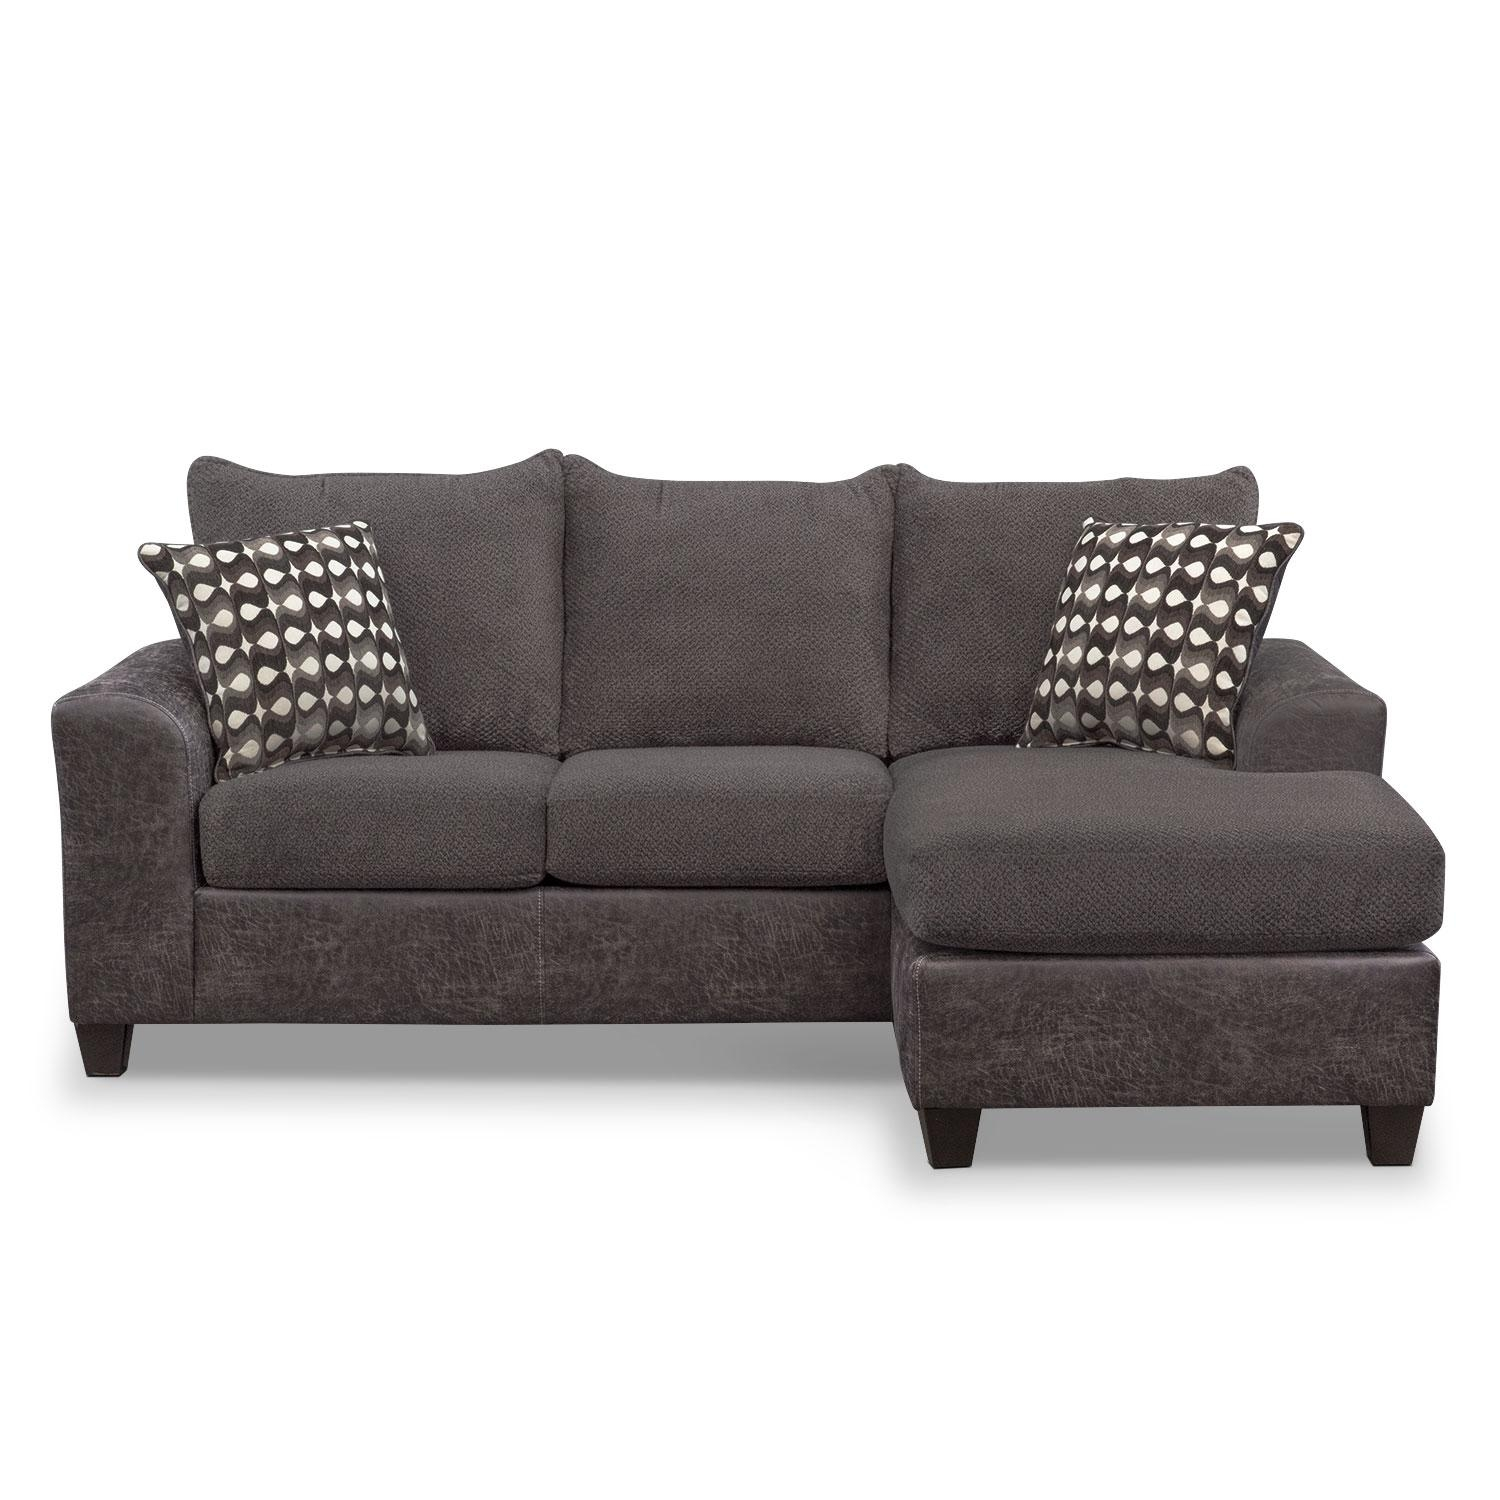 Brando Sofa With Chaise – Smoke | Value City Furniture Intended For Chaise Sofas (Image 2 of 20)